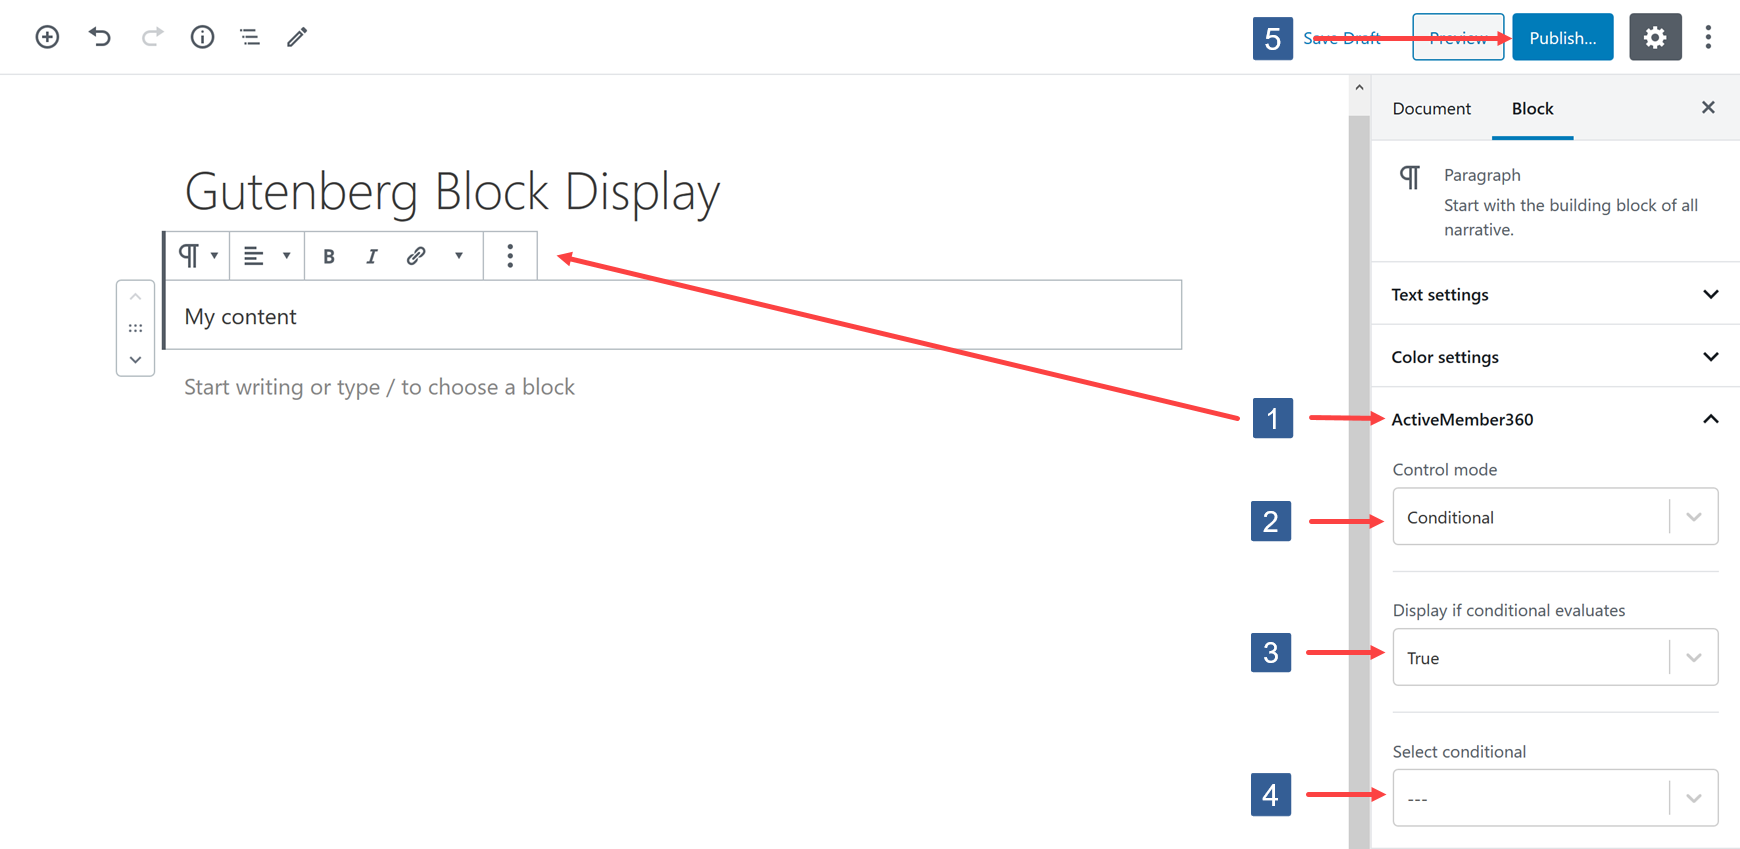 Select a conditional to control Gutenberg block display